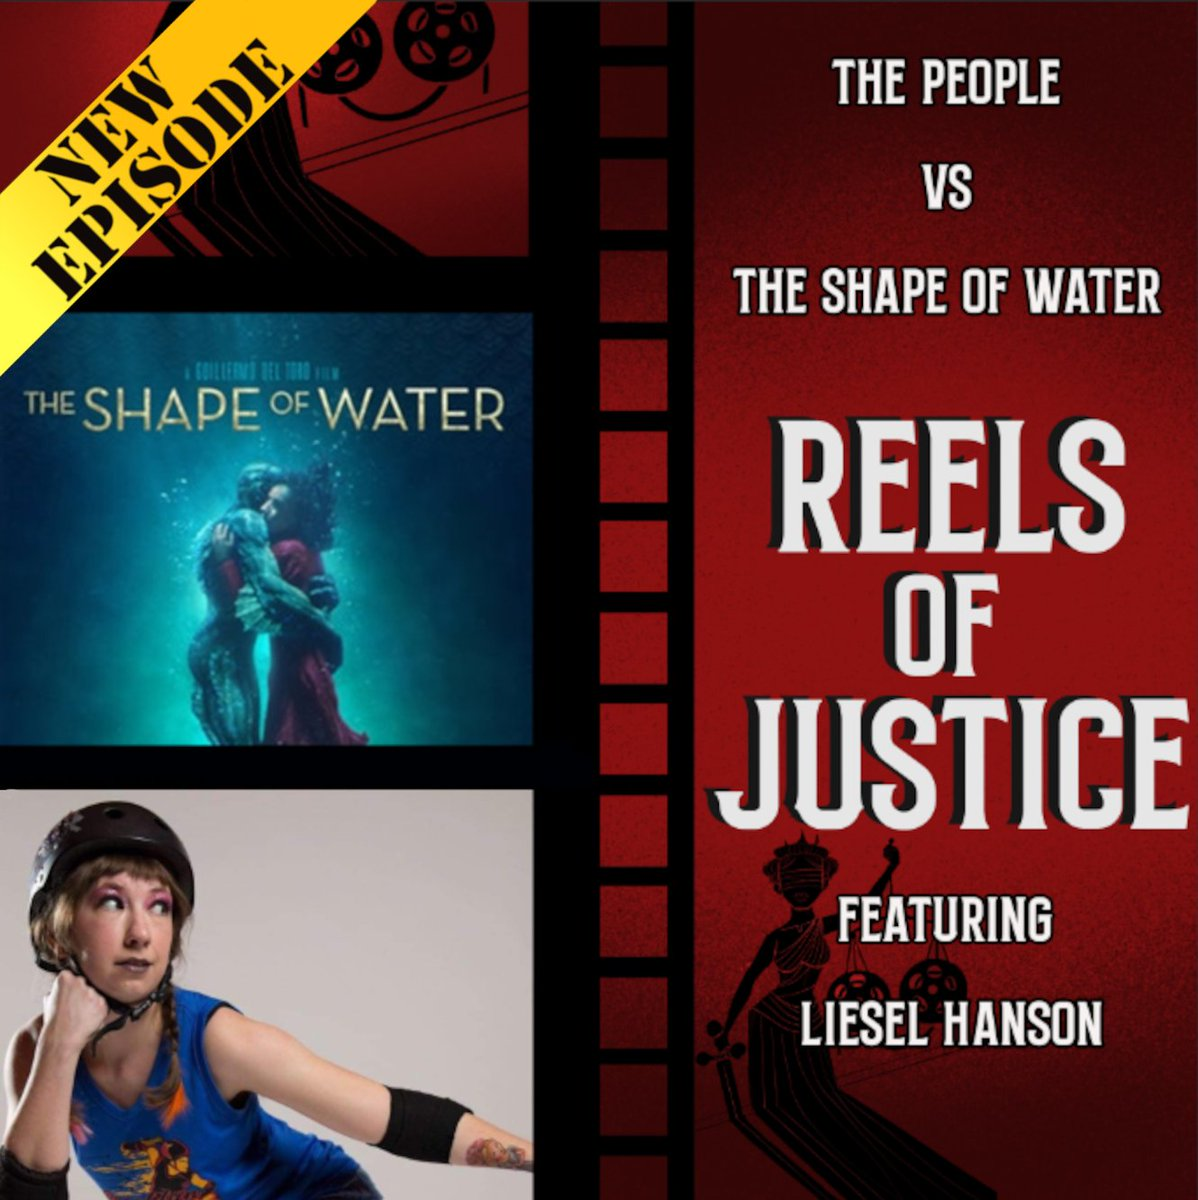 """On this week's episode, @anndisaster (""""Happy Hunting"""") indicts Guillermo del Toro's """"The Shape of Water.""""  #movies #movie #film #cinema #films #hollywood #moviescenes #horror #comedy #movienight #podcasts #podcast #badmovies #mst3k #rifftrax #horrormovies #moviereview #followpic.twitter.com/Wgx6iokuwU"""